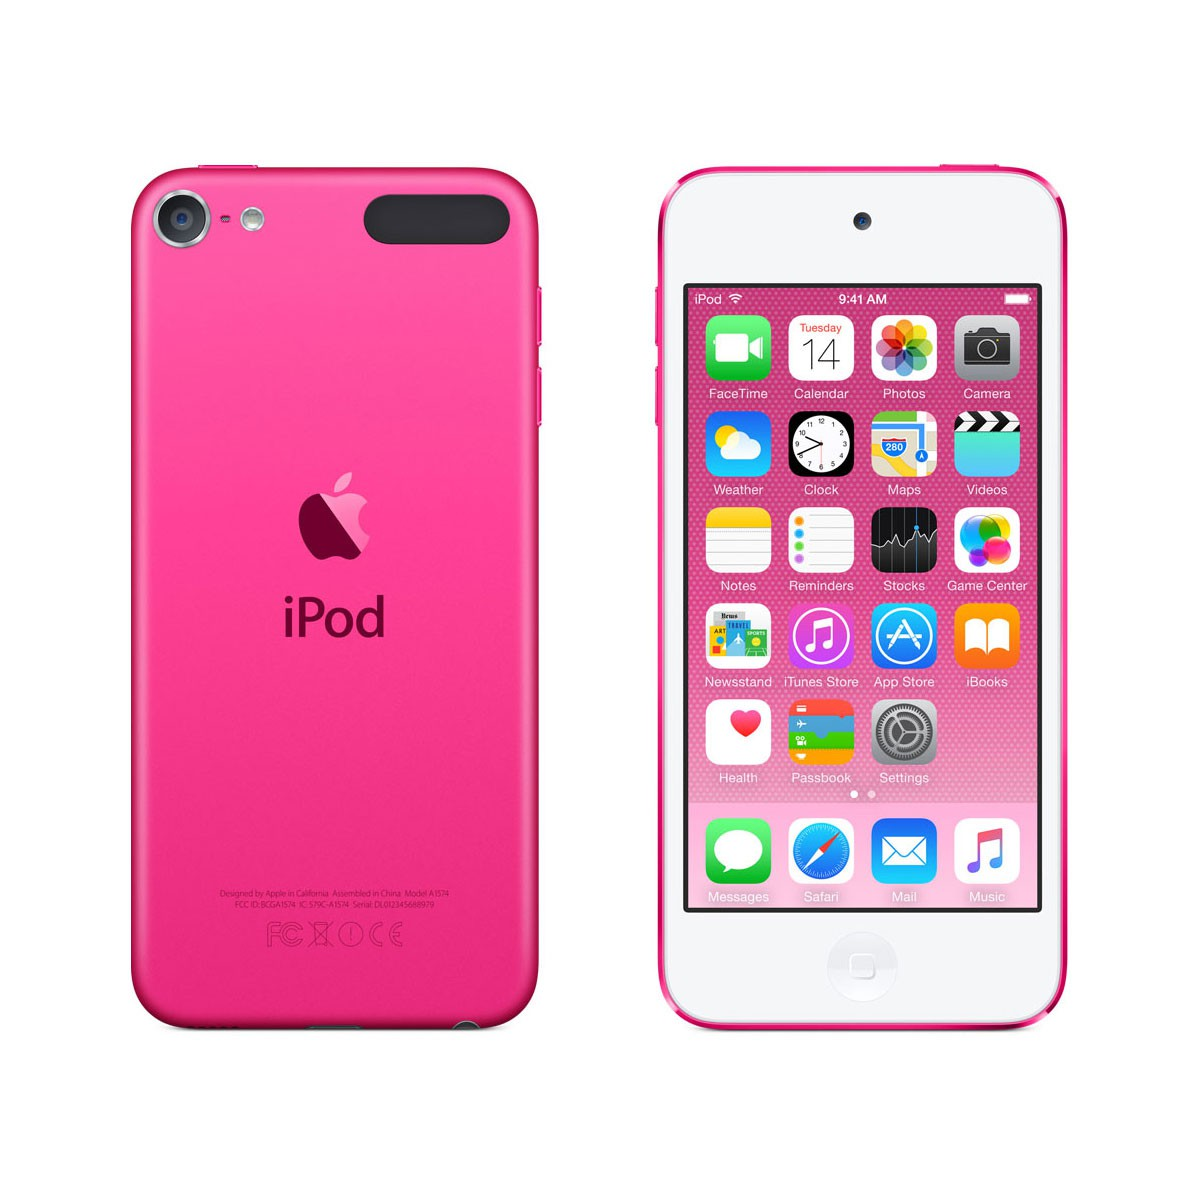 iPod touch 64GB - Pink